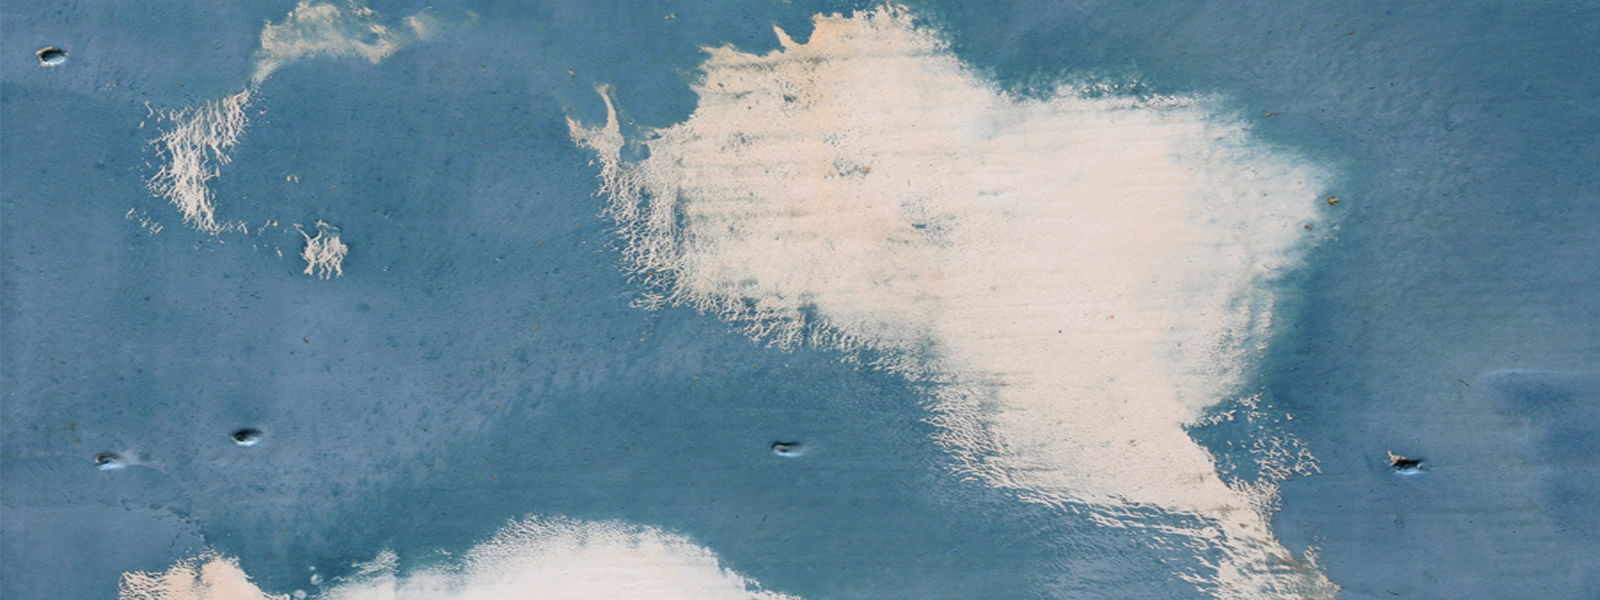 Harry Adams Nothing Remains Unchanged But The Clouds detail2.jpg